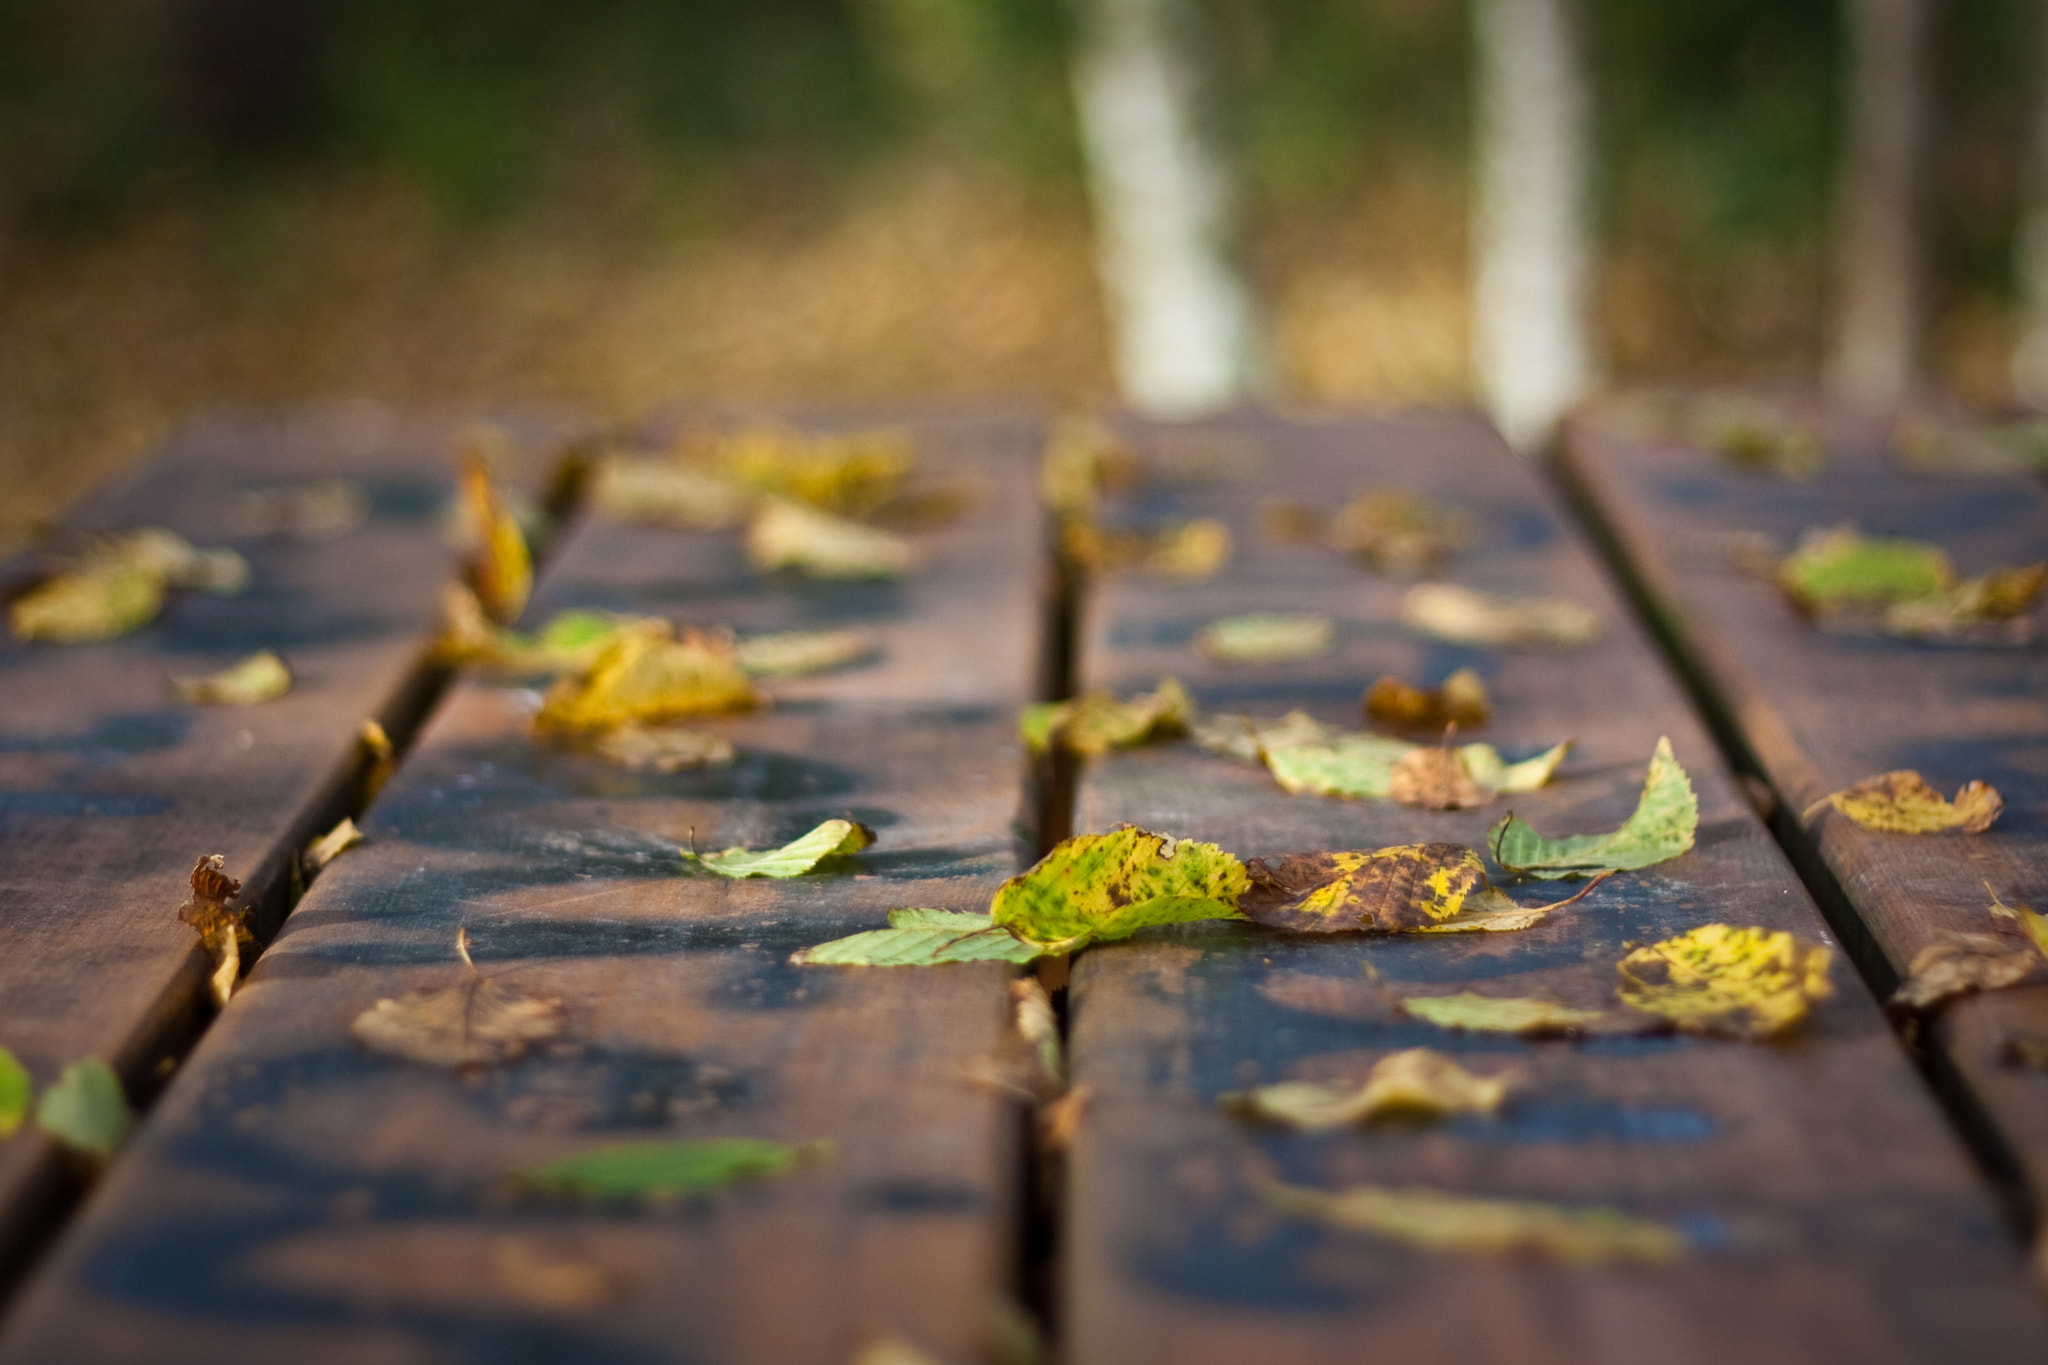 Photograph Leaves on table by Sébastien Puissegur on 500px